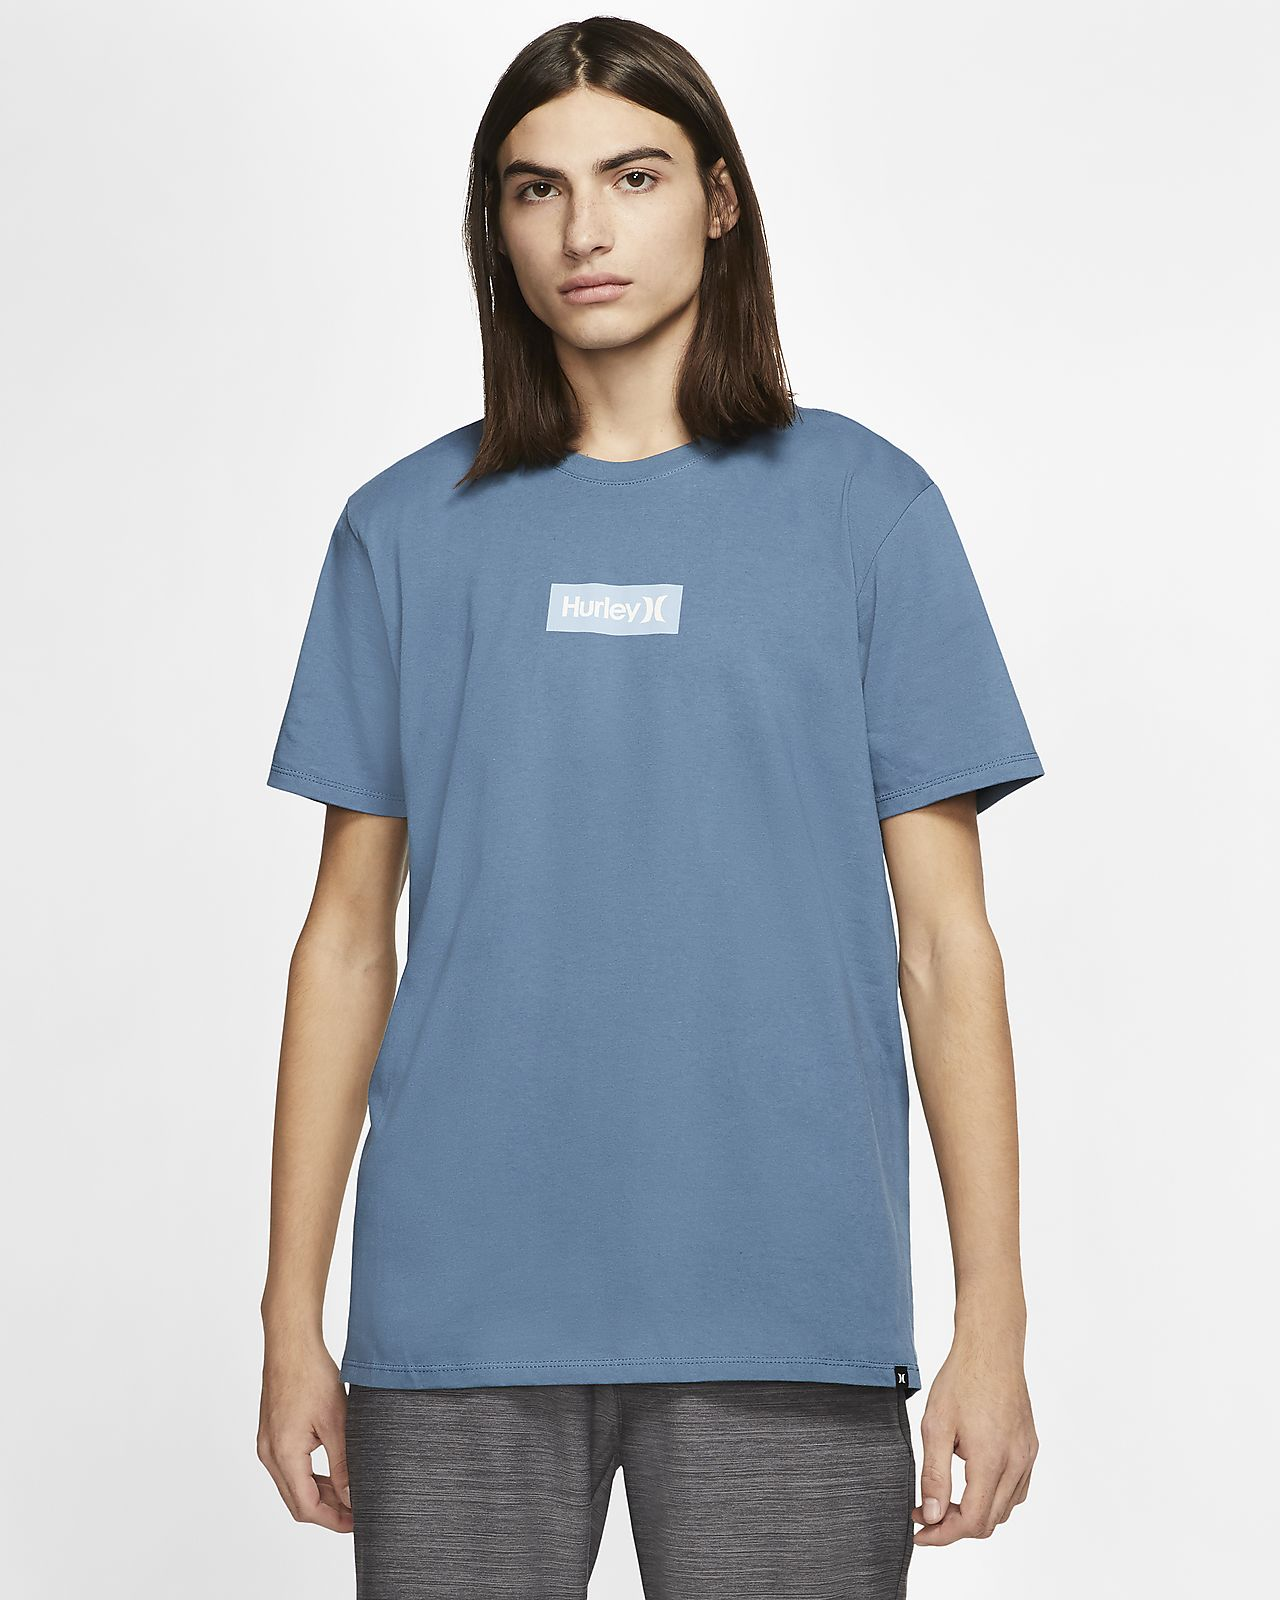 Blue Hurley One and Only Color Premium Short Sleeve Tee M